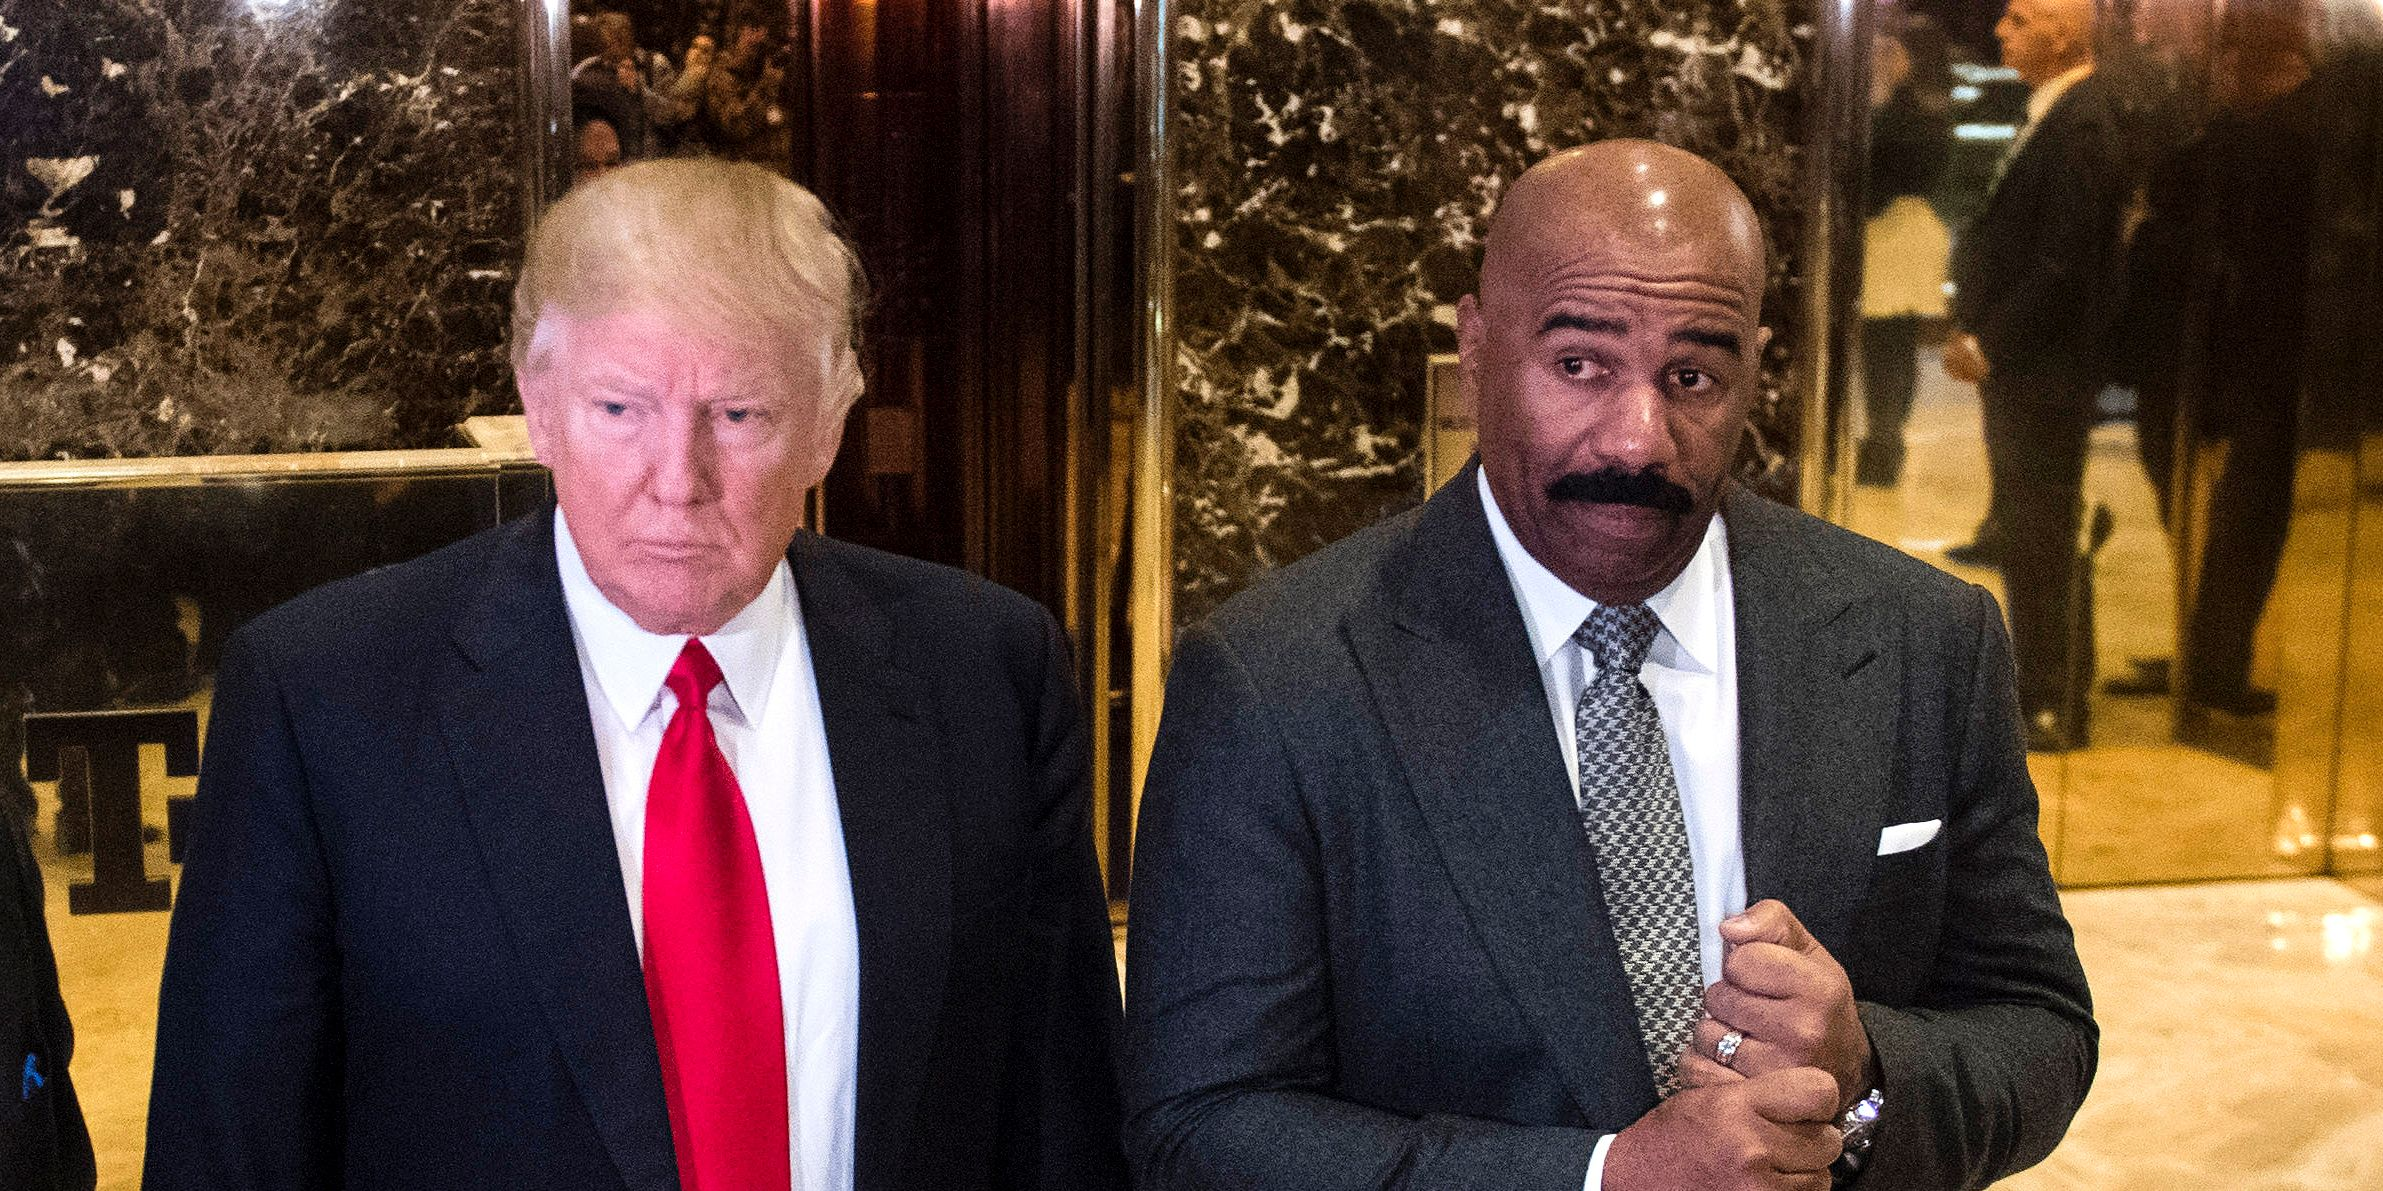 Steve Harvey's Ratings Plummet After Meeting With Trump